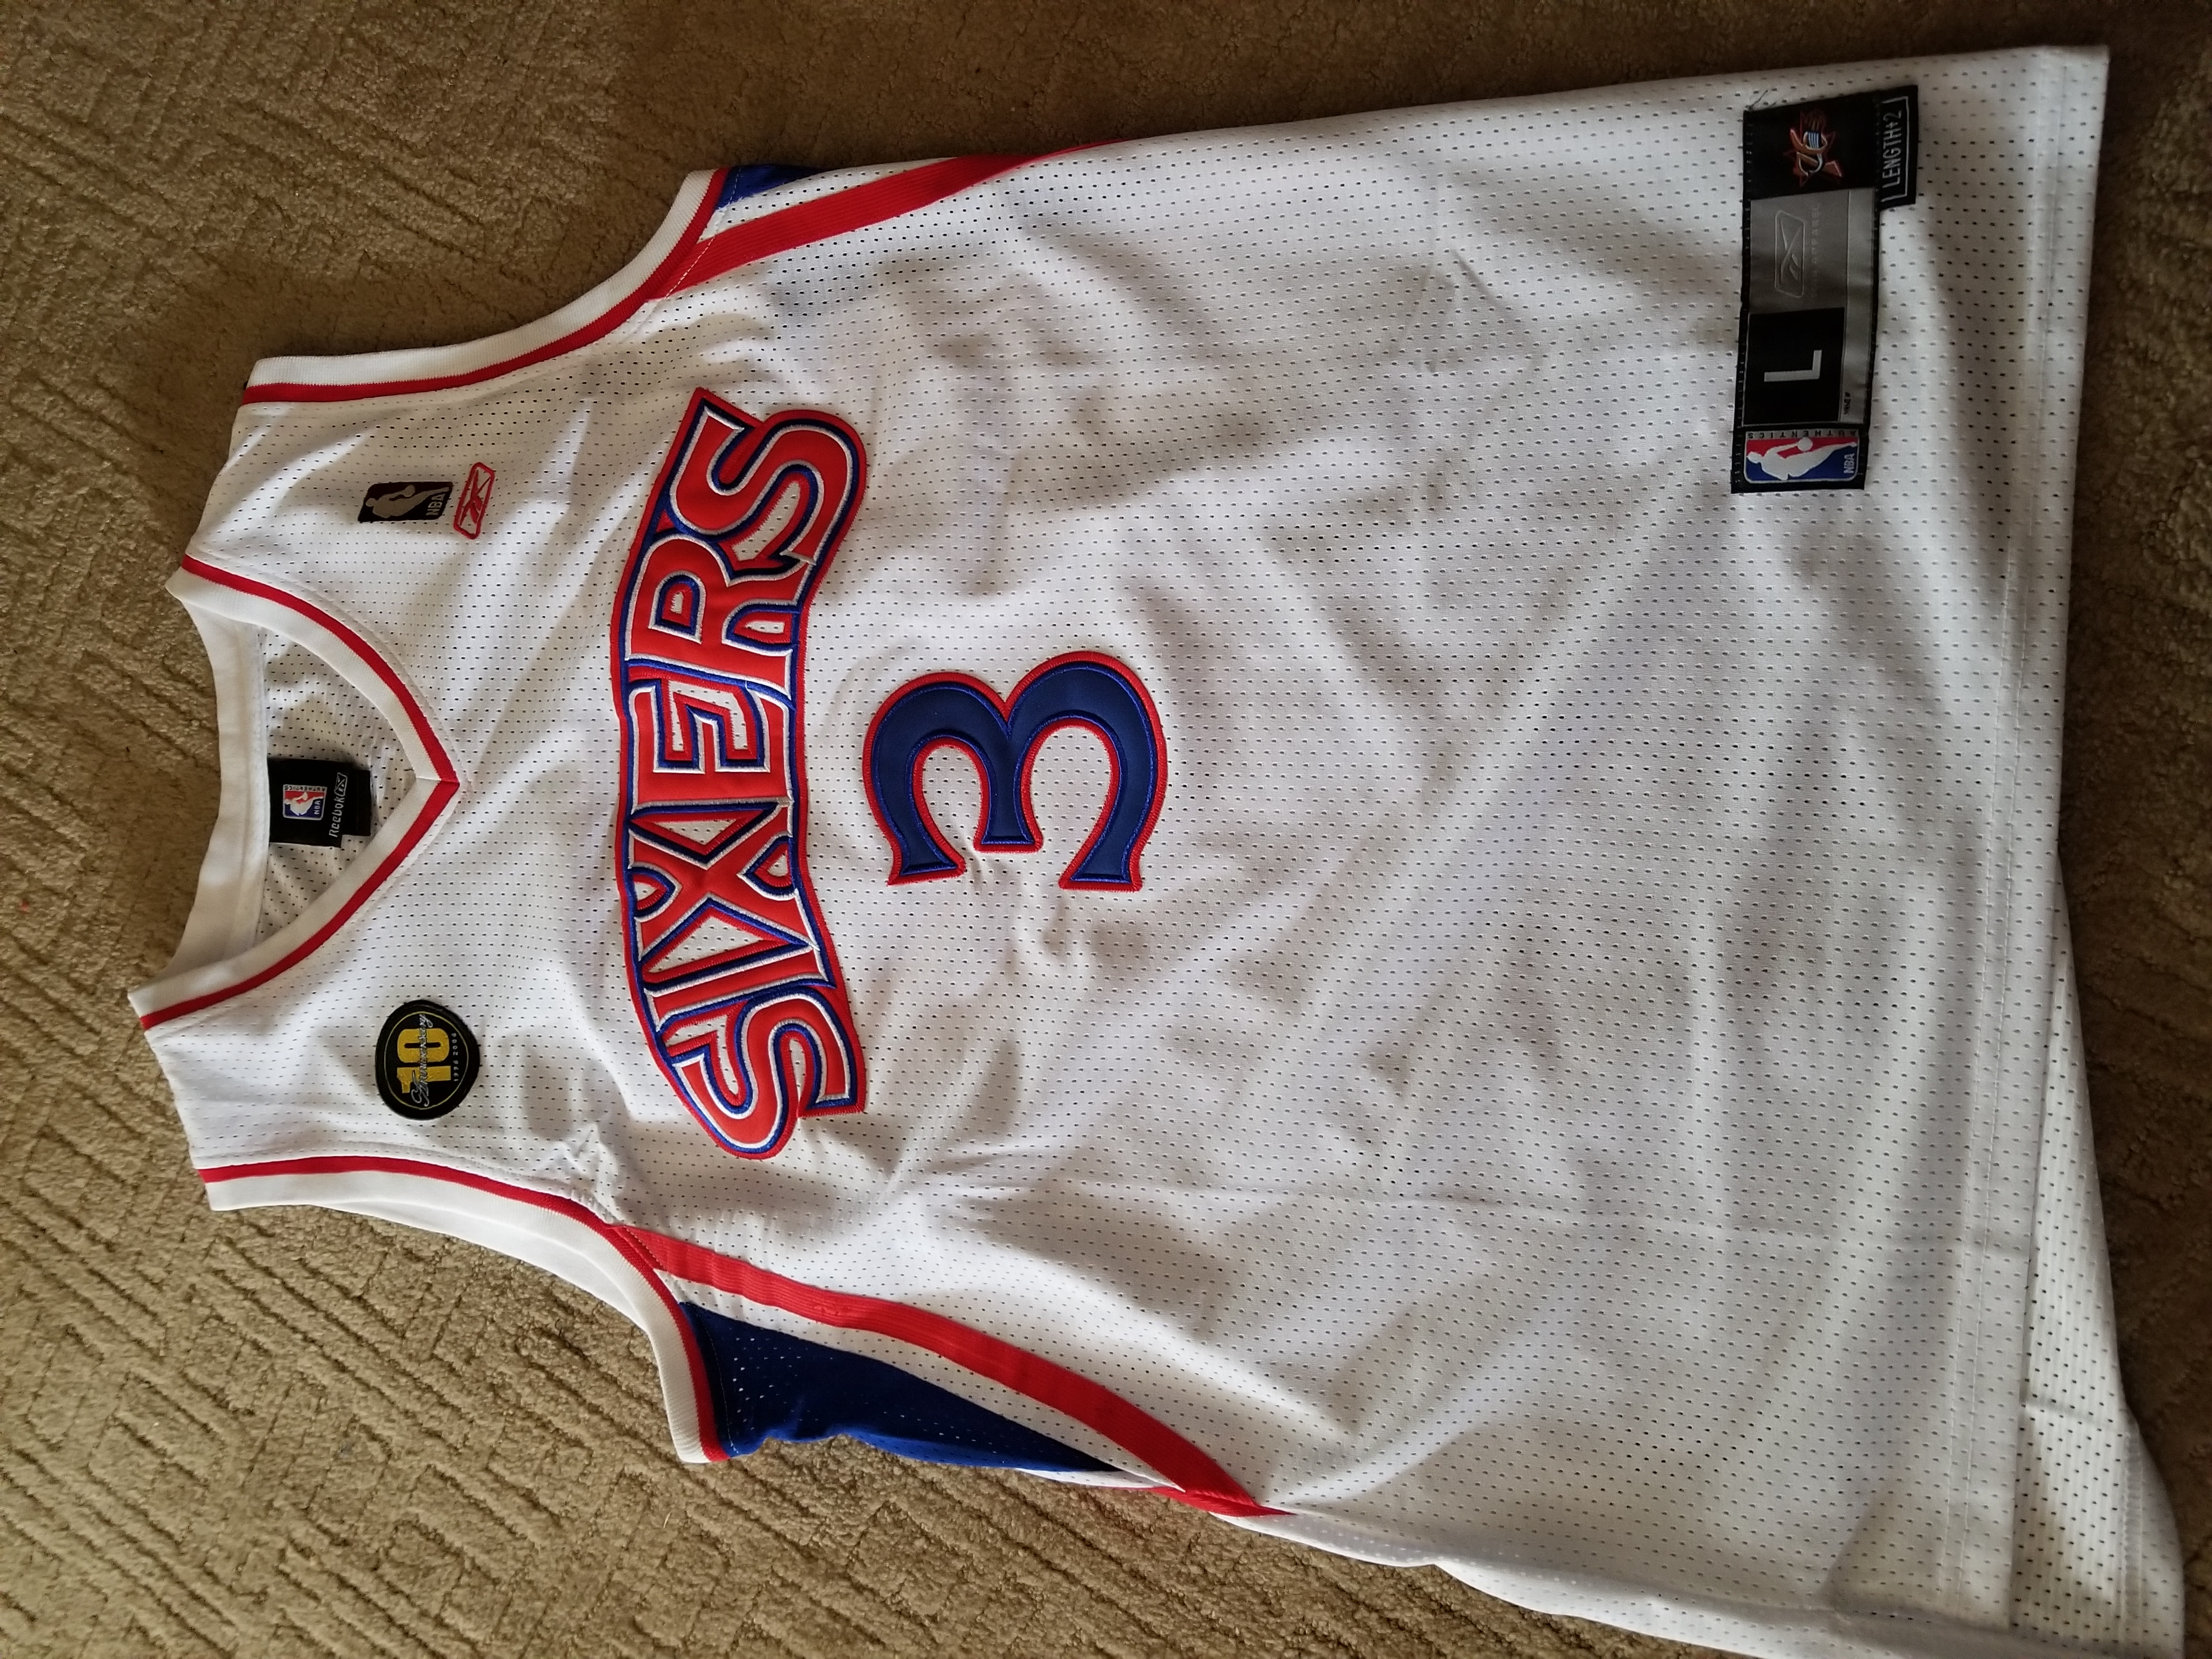 Reebok Allen Iverson Sixers Jersey 10th Anniversary Edition (Basketball)